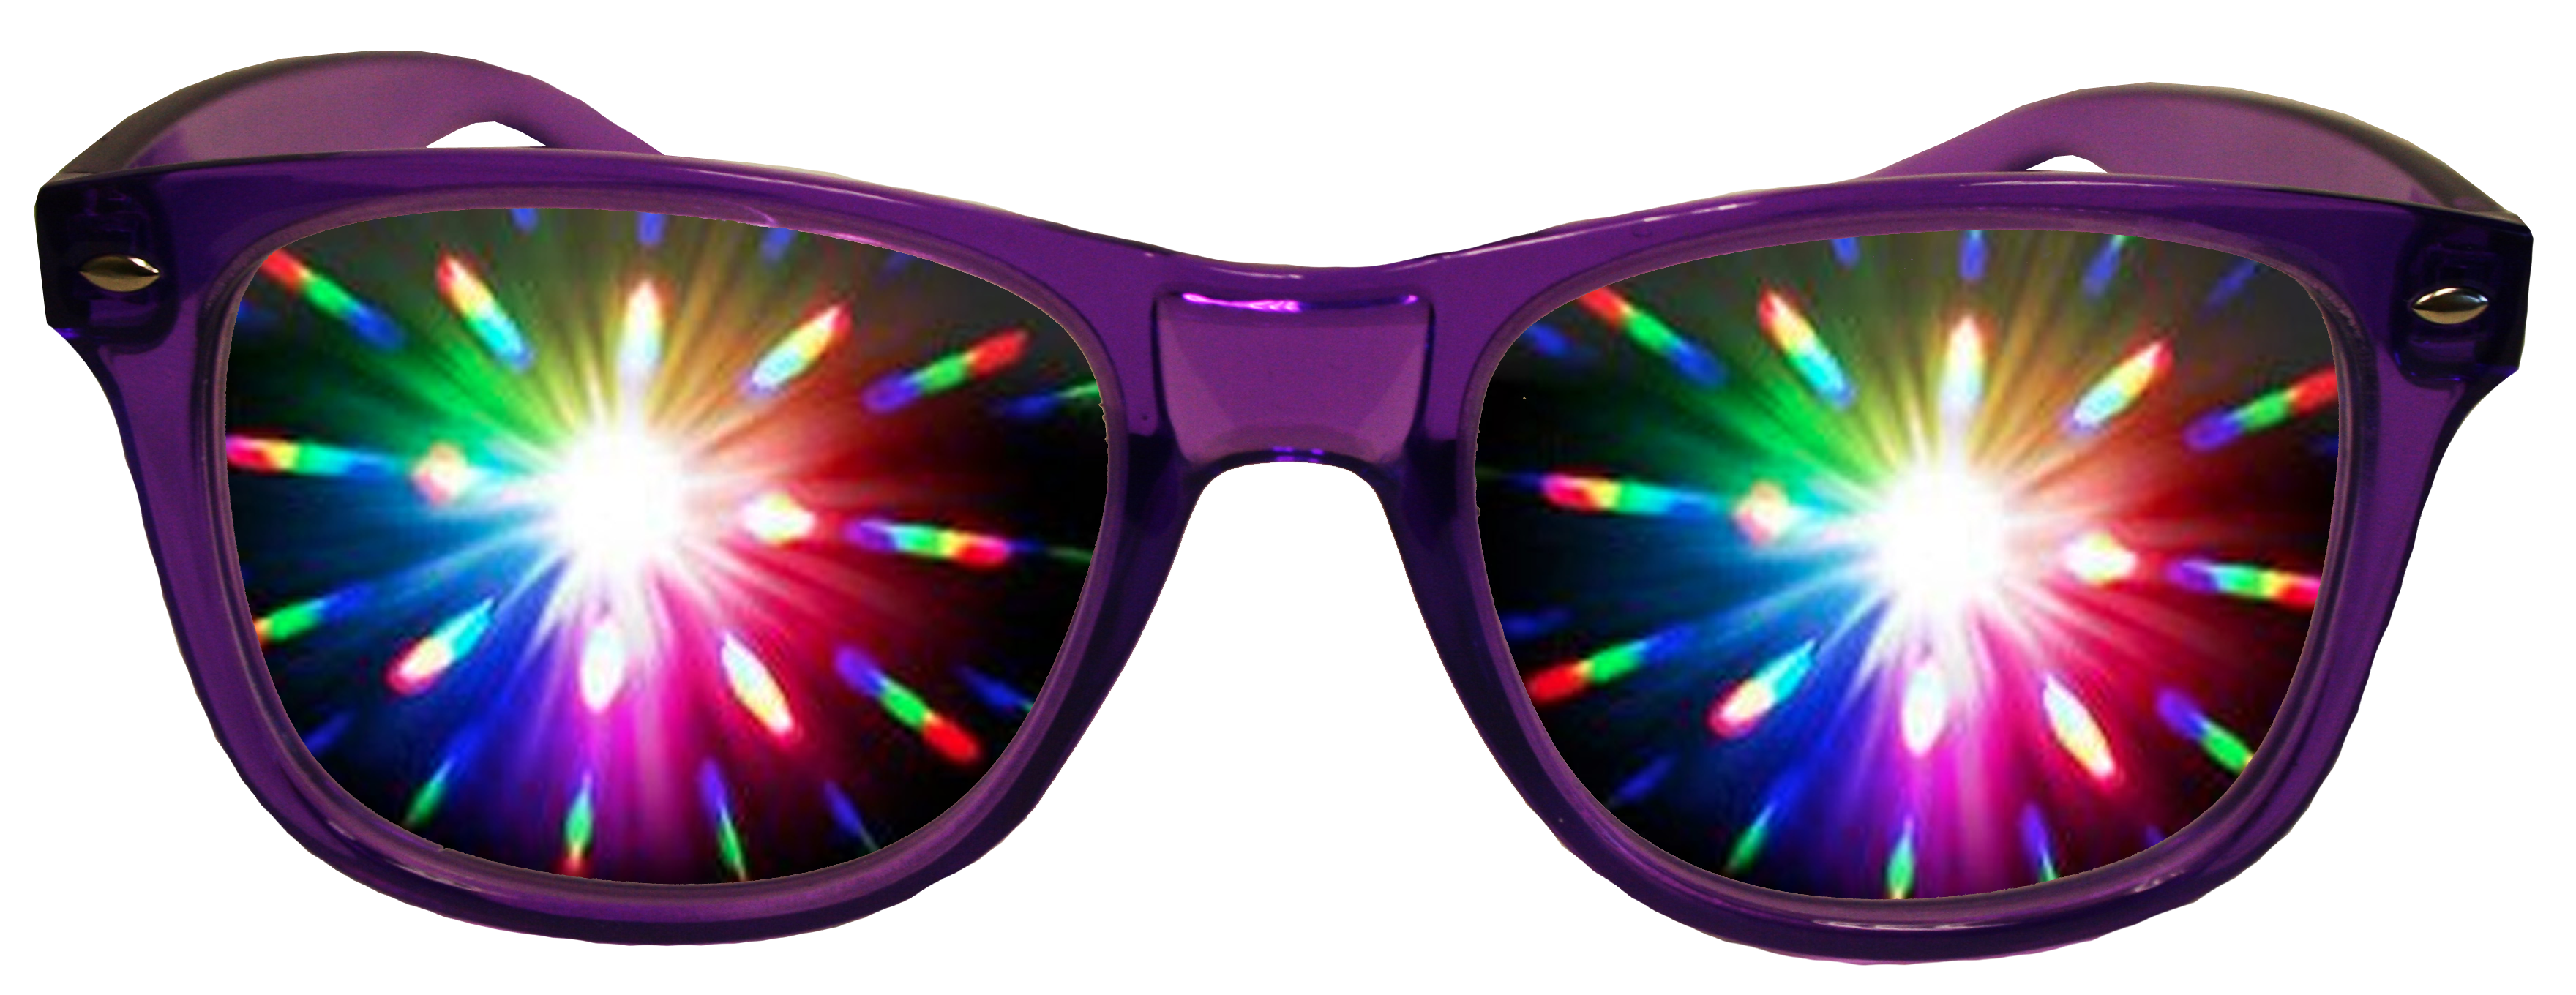 Purple Diffraction Rave Glasses By American Paper Optics Guaranteed Best Pricing Www The3dmarket Com Diffraction Glasses Glasses Rave Glasses